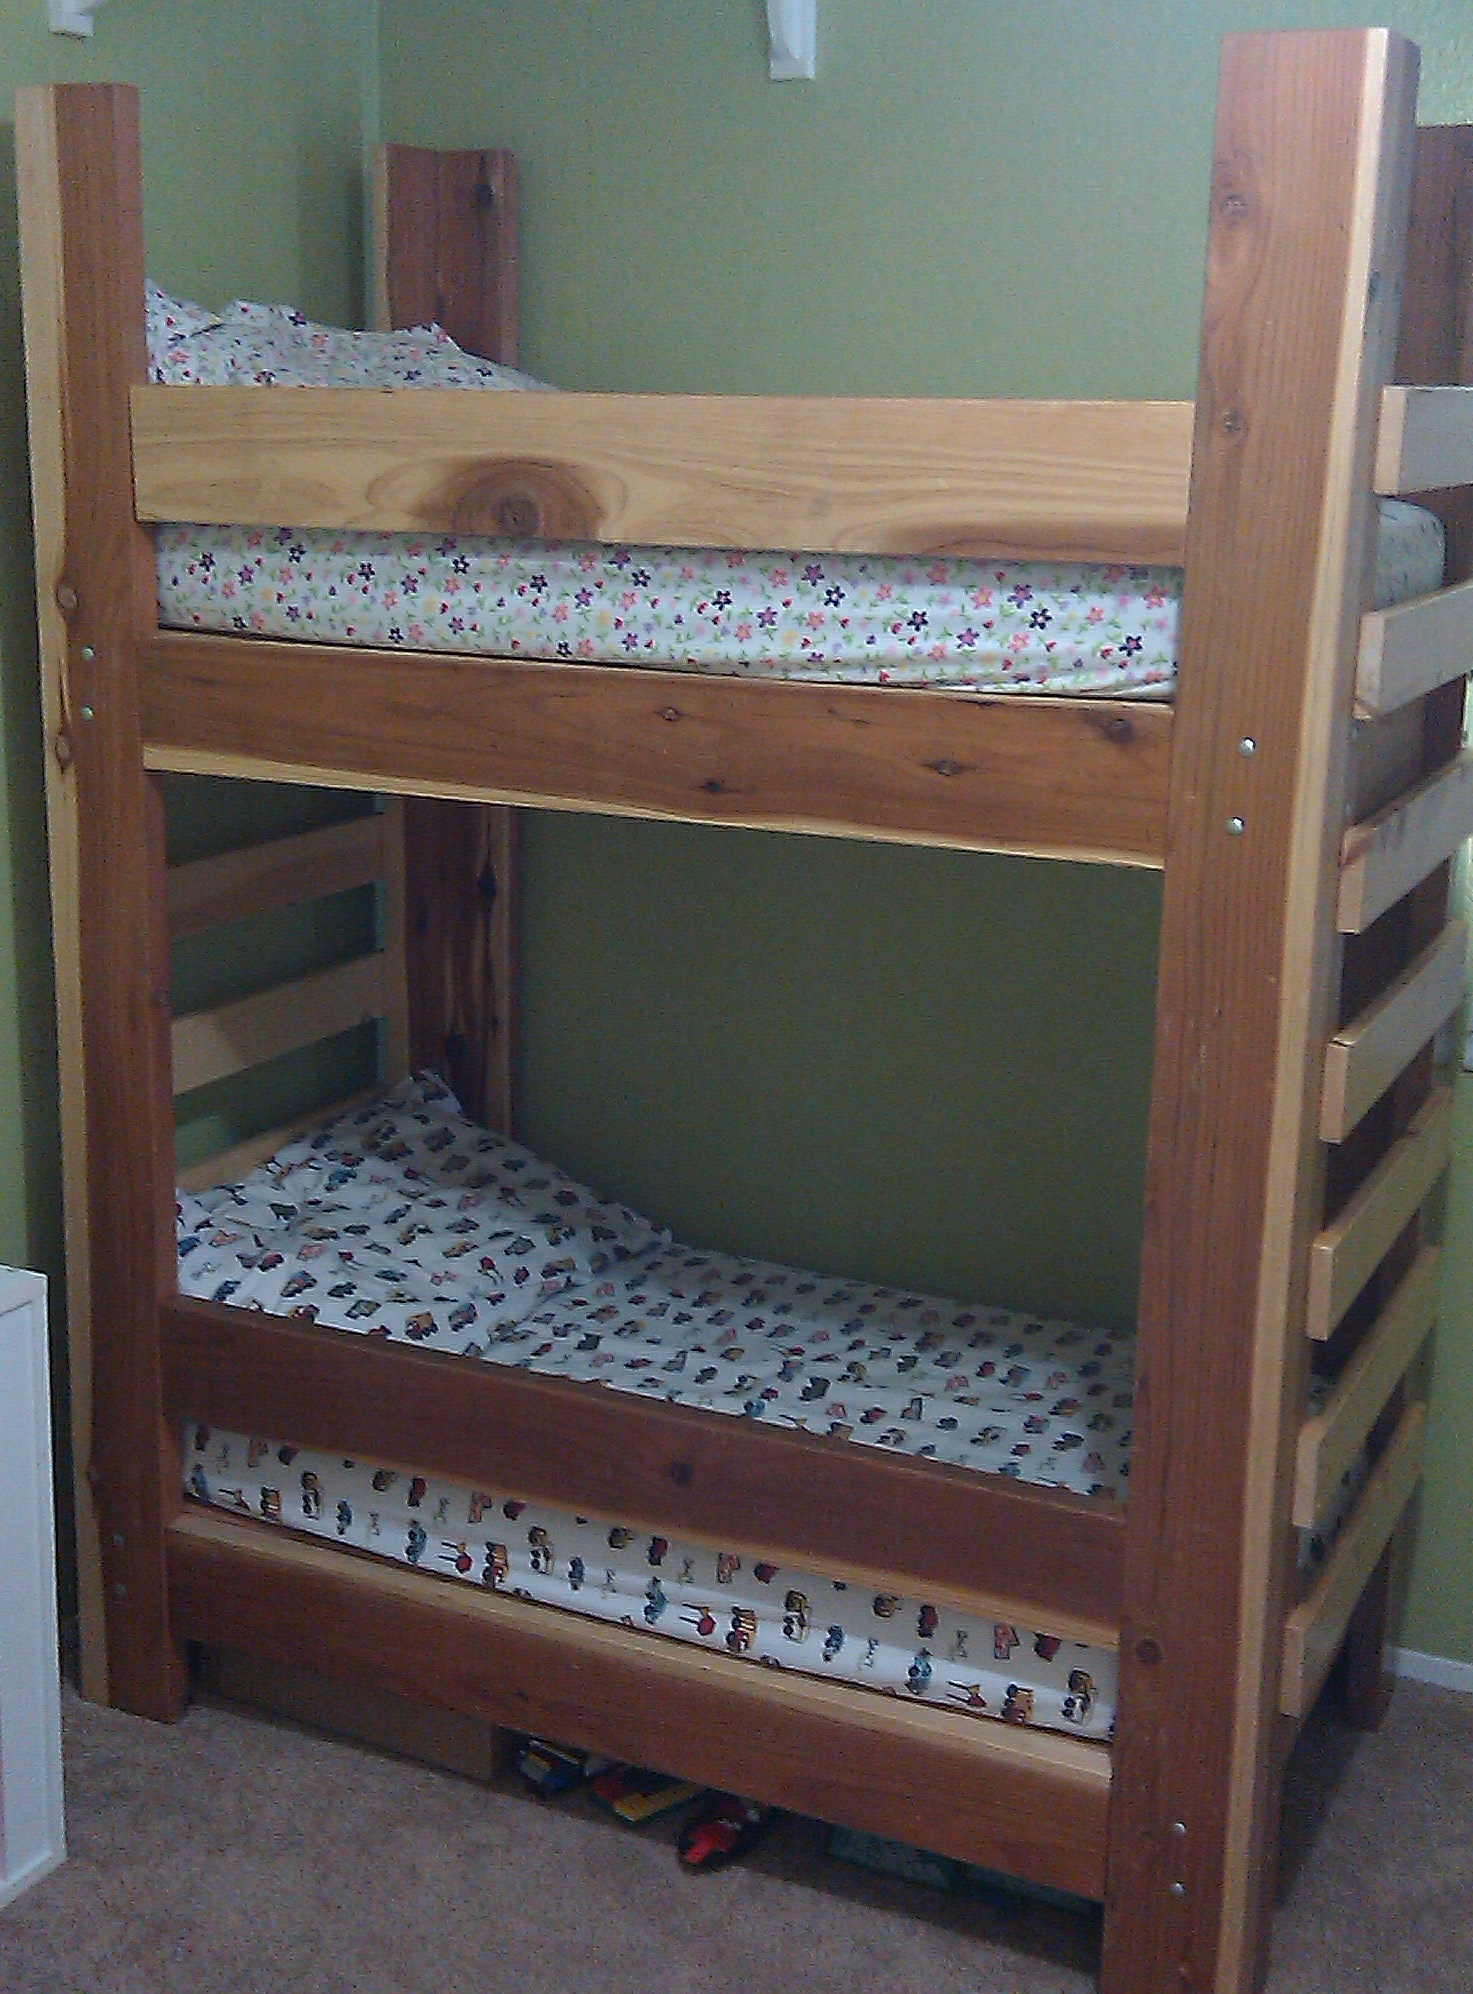 toddler bunk beds plans plans diy free download twin bed plans with bunk beds toddlers diy